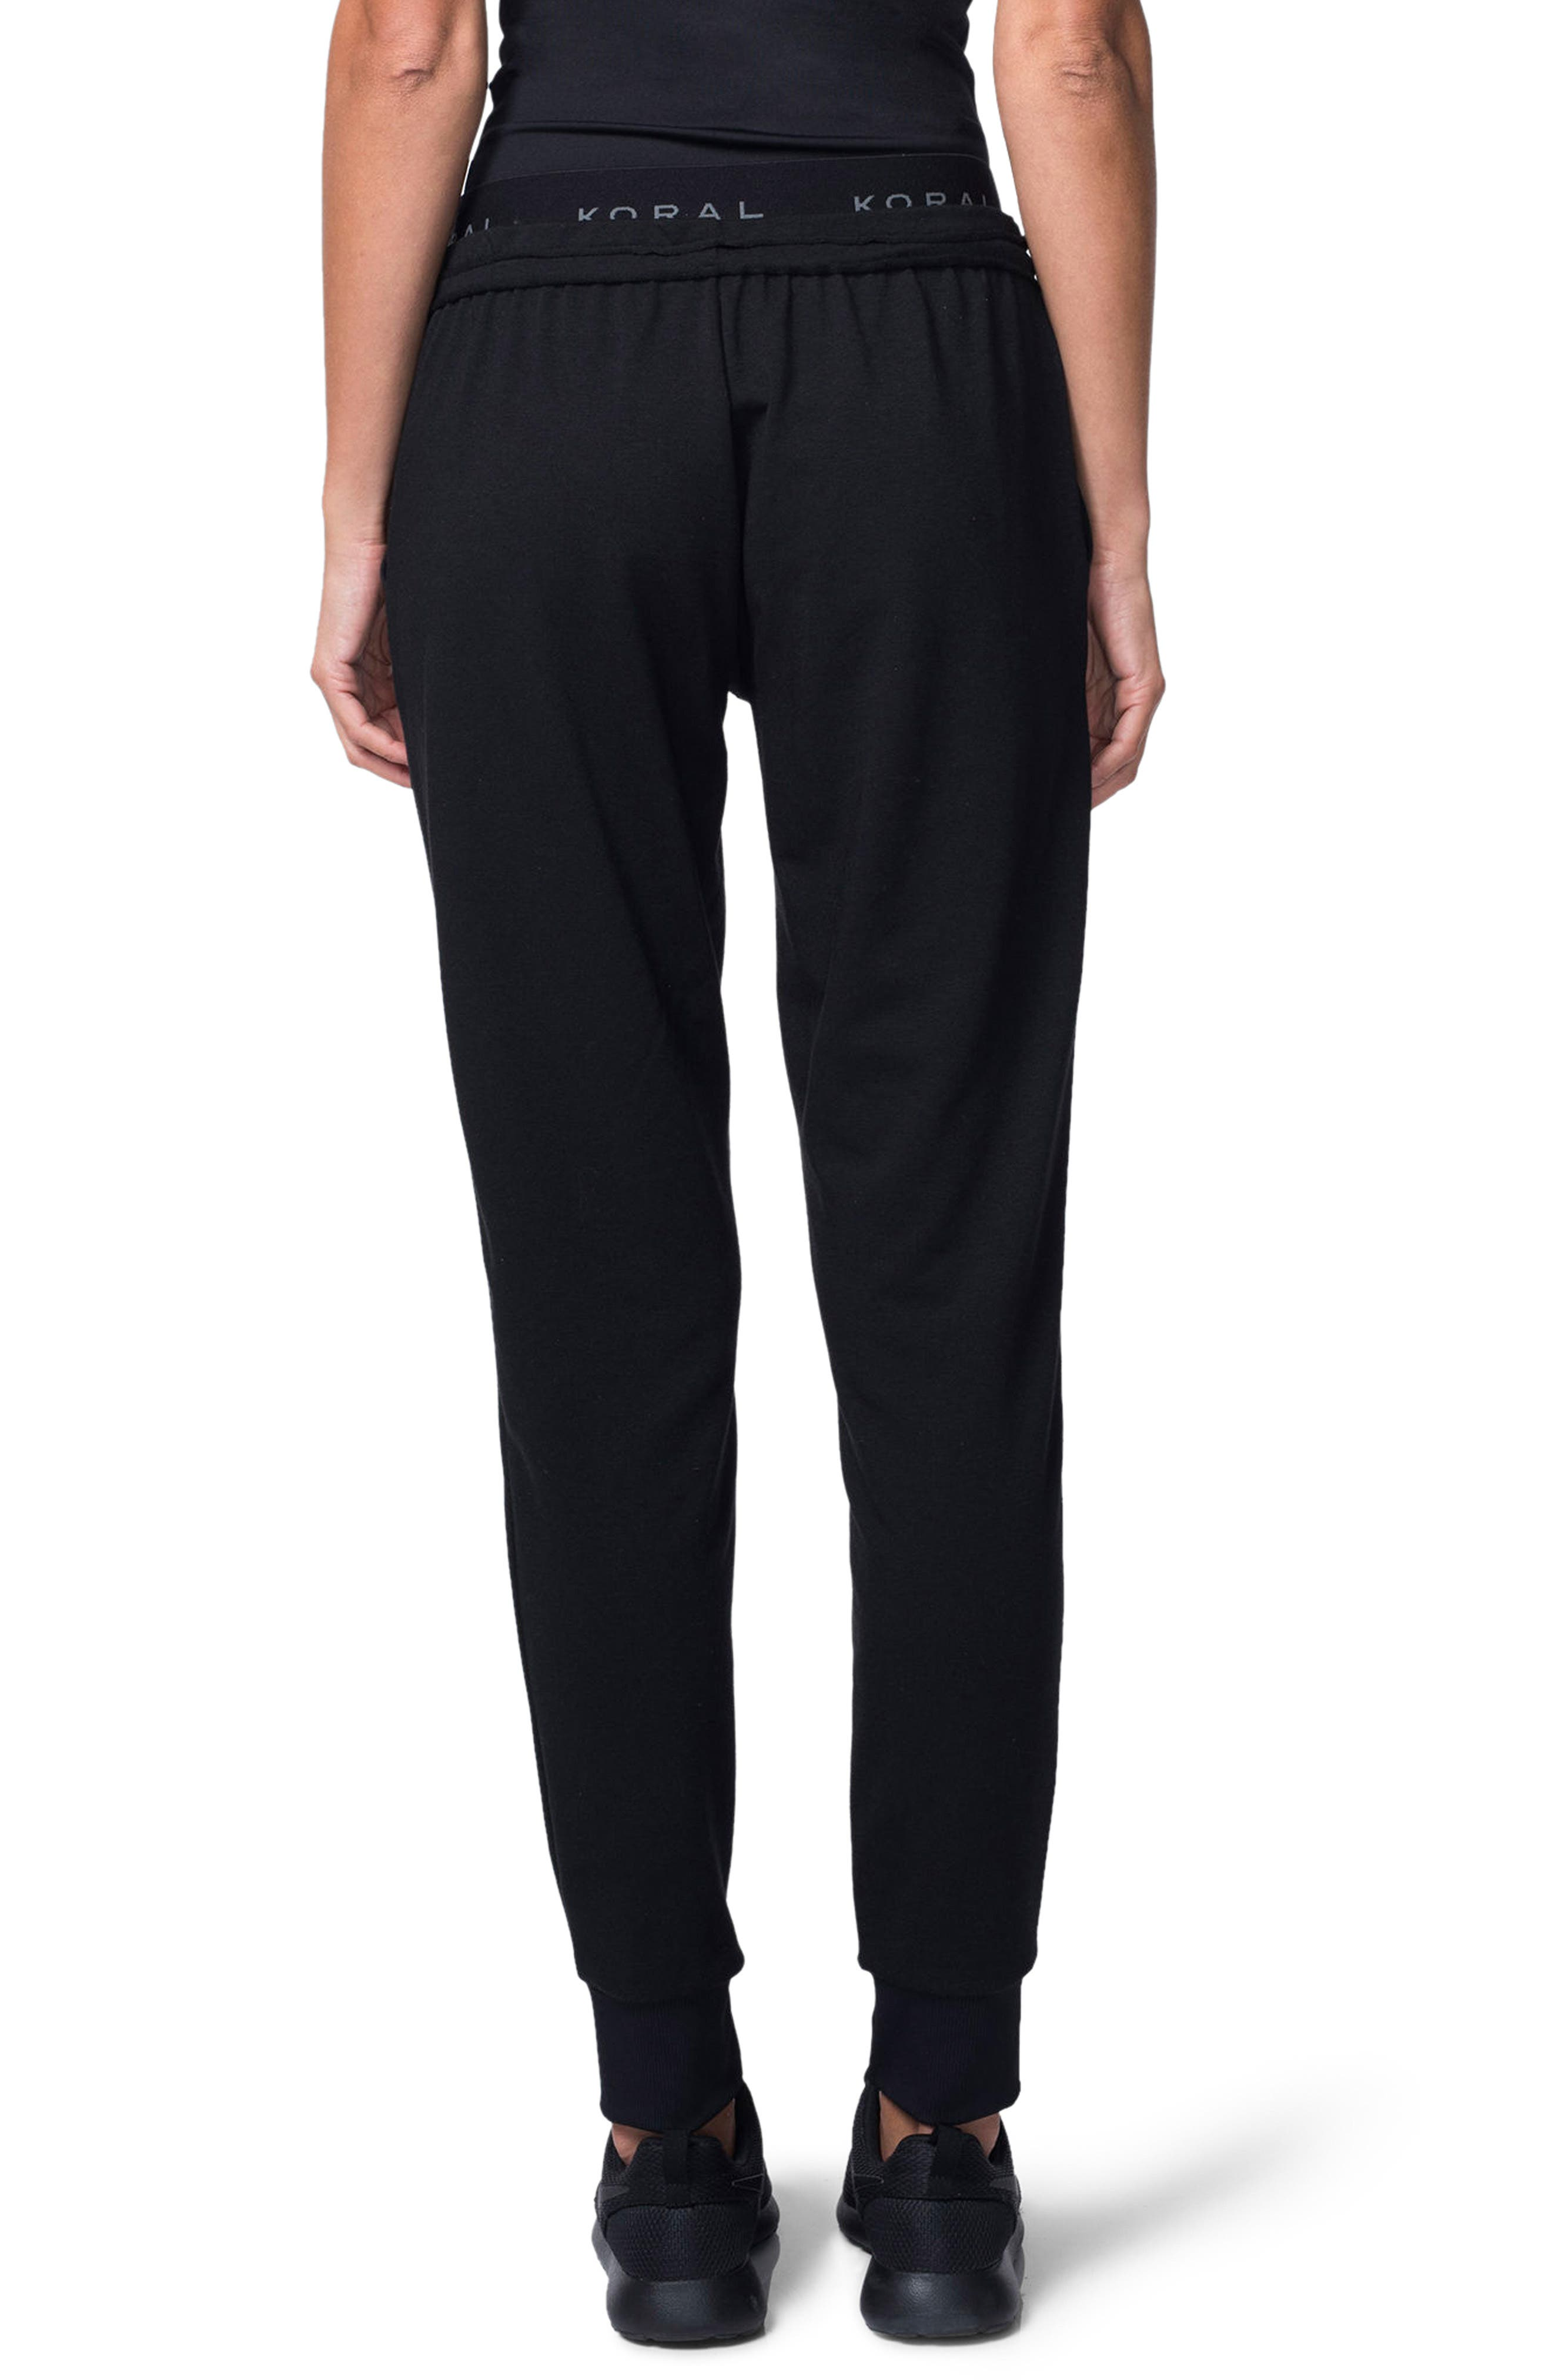 Station French Terry Pants,                             Alternate thumbnail 2, color,                             001